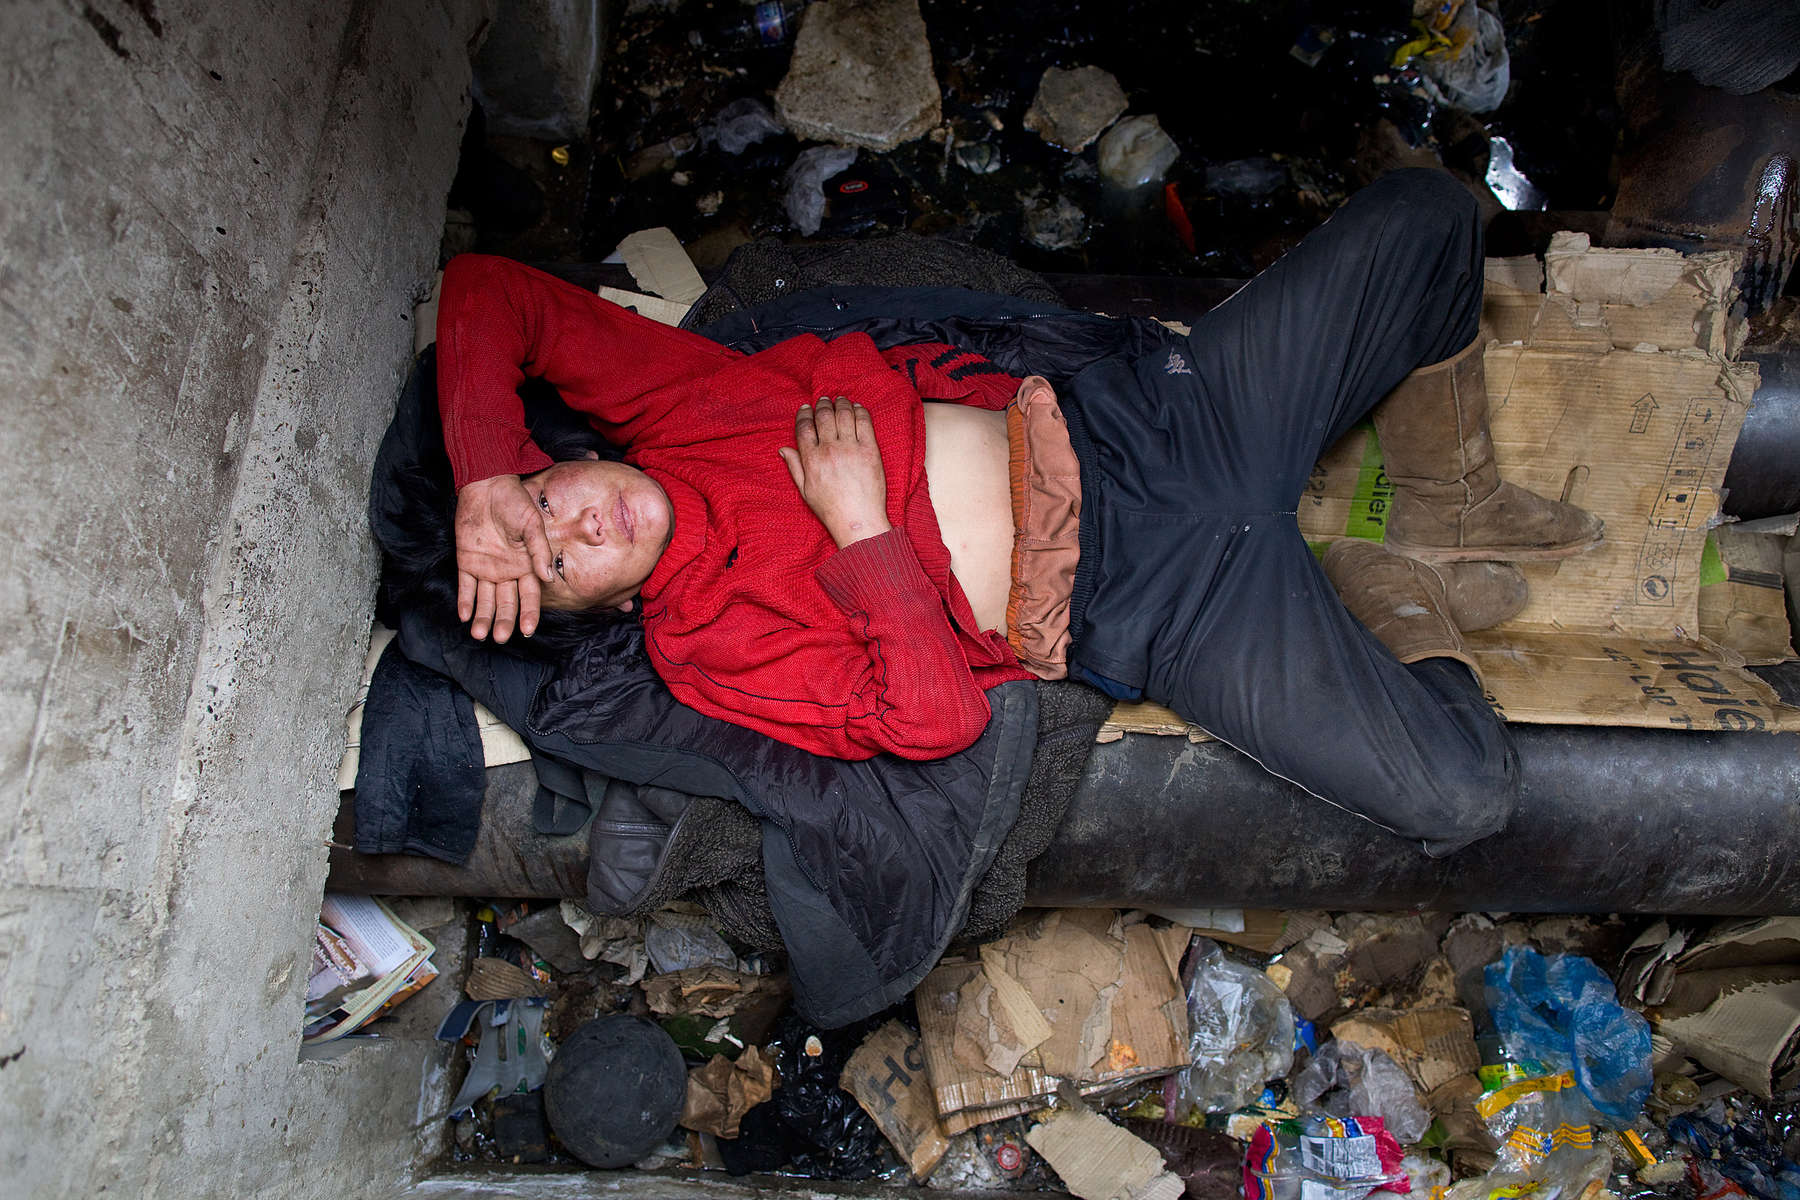 ULAAN BAATAR, MONGOLIA-MARCH 13 : Erdenetsetseg,36, rests on a water pipe, used as her bed living in a sewer filled with garbage  March 13 2010  in Ulaan Baatar, Mongolia. Erdenetsetseg moved to the capitol city from a province five years ago, without work she collects cans and bottles to make enough money to buy a little food and her daily fix of vodka.  Since 70 years of communist rule ended in 1990, Mongolia has become one of the most pro-business countries. While economic reforms have brought prosperity to Ulaan Baatar, there still widespread unemployment, some used to work in the now defunct state industries. Approximately over 35% of Mongolians live below the poverty line, many unable to buy basic food needed to survive. Social problems include depression, alcohol abuse, domestic violence and crime. Mongolia suffers with a very high number of alcoholics, all consuming cheap Mongolian vodka that is readily available to the poor and the unemployed, Many Mongolians have immigrated to the capitol city from the far away provinces seeking employment.  For the homeless during the winter this means extreme hardship, for some homeless living in the sewers means warmth verses dealing with temperatures dropping as low as -25C mid- Winter. This year Mongolia has experienced the worst winter in 30 years. (Photo by Paula Bronstein /Getty Images)